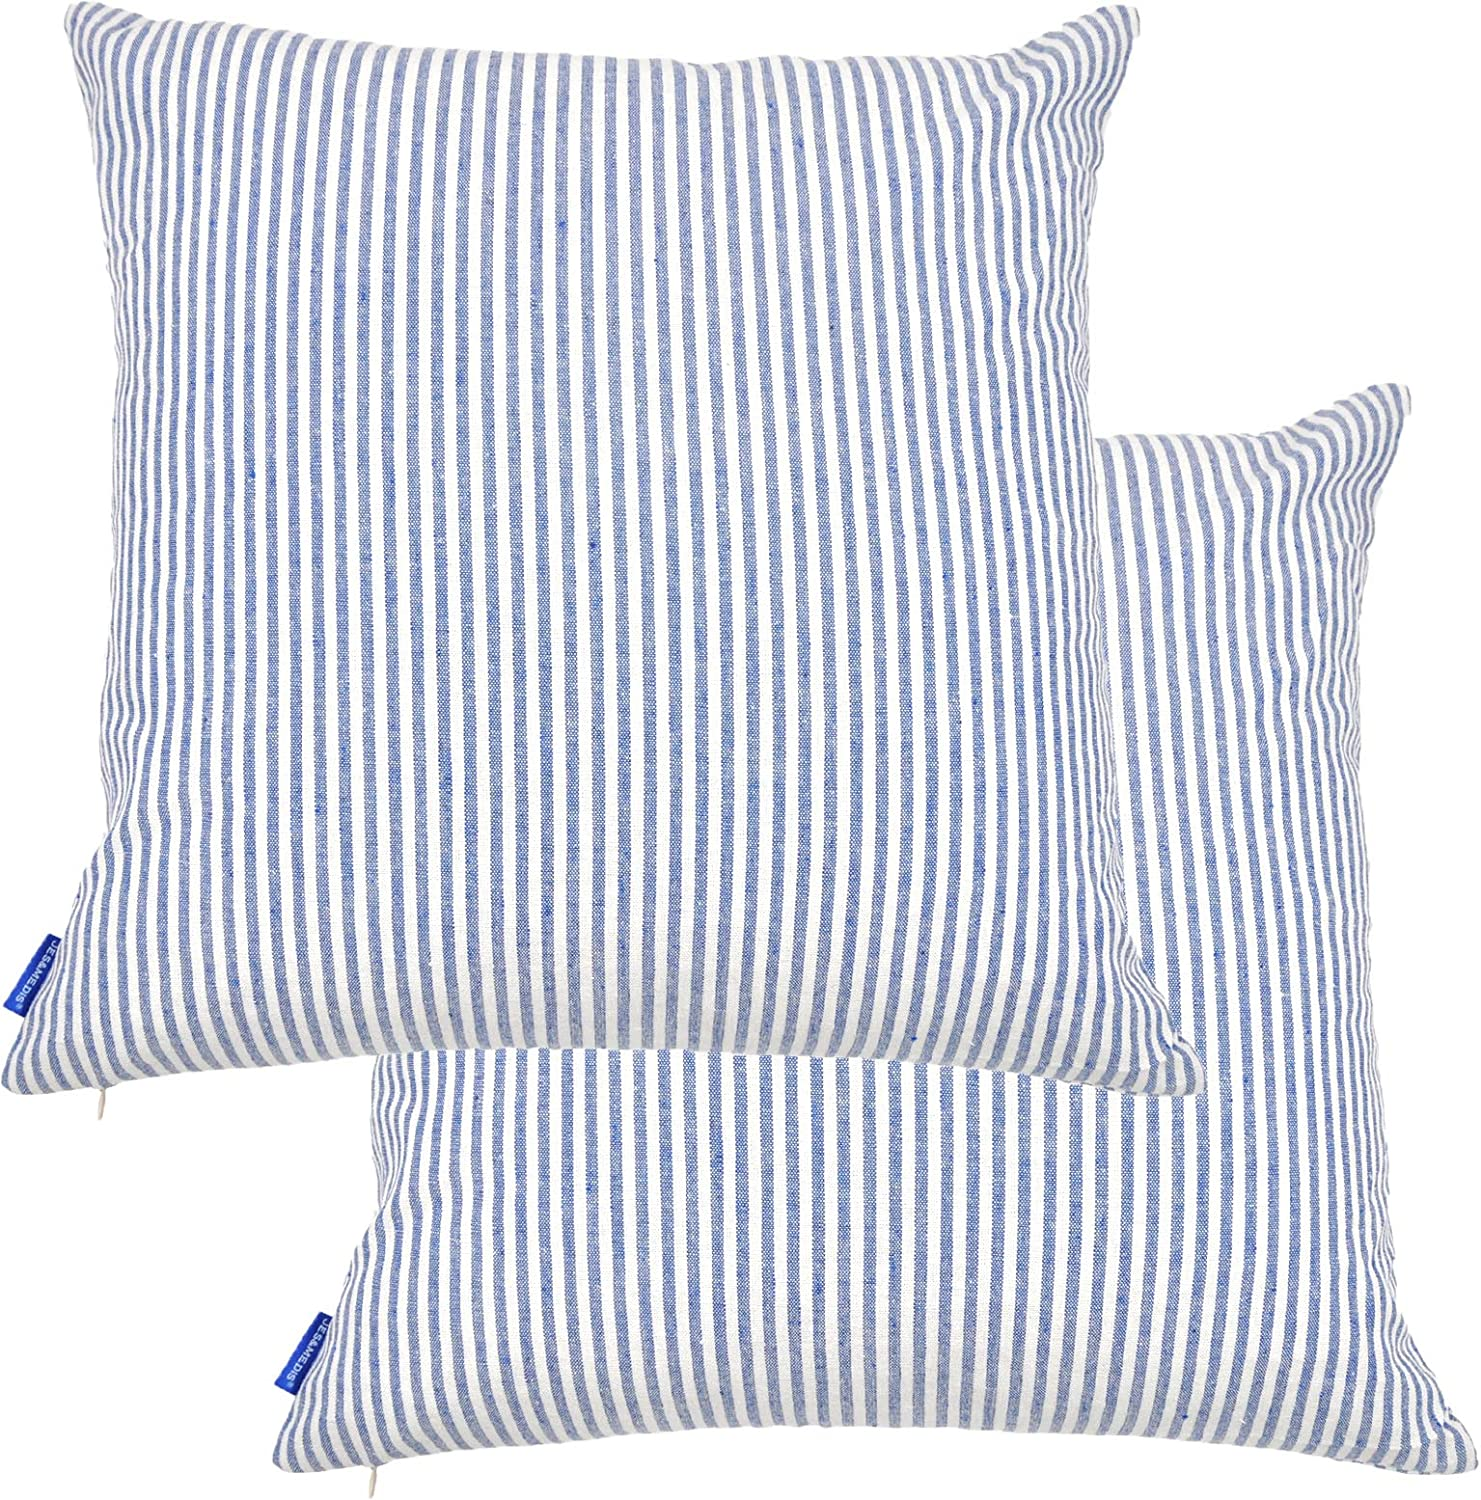 JES&MEDIS Pack of 2 Pillowcase Cotton Striped Home Decor Square Throw Pillow Covers Set for Office Bed Car Club 18 x 18 Inches 45 x 45 cm Blue and White